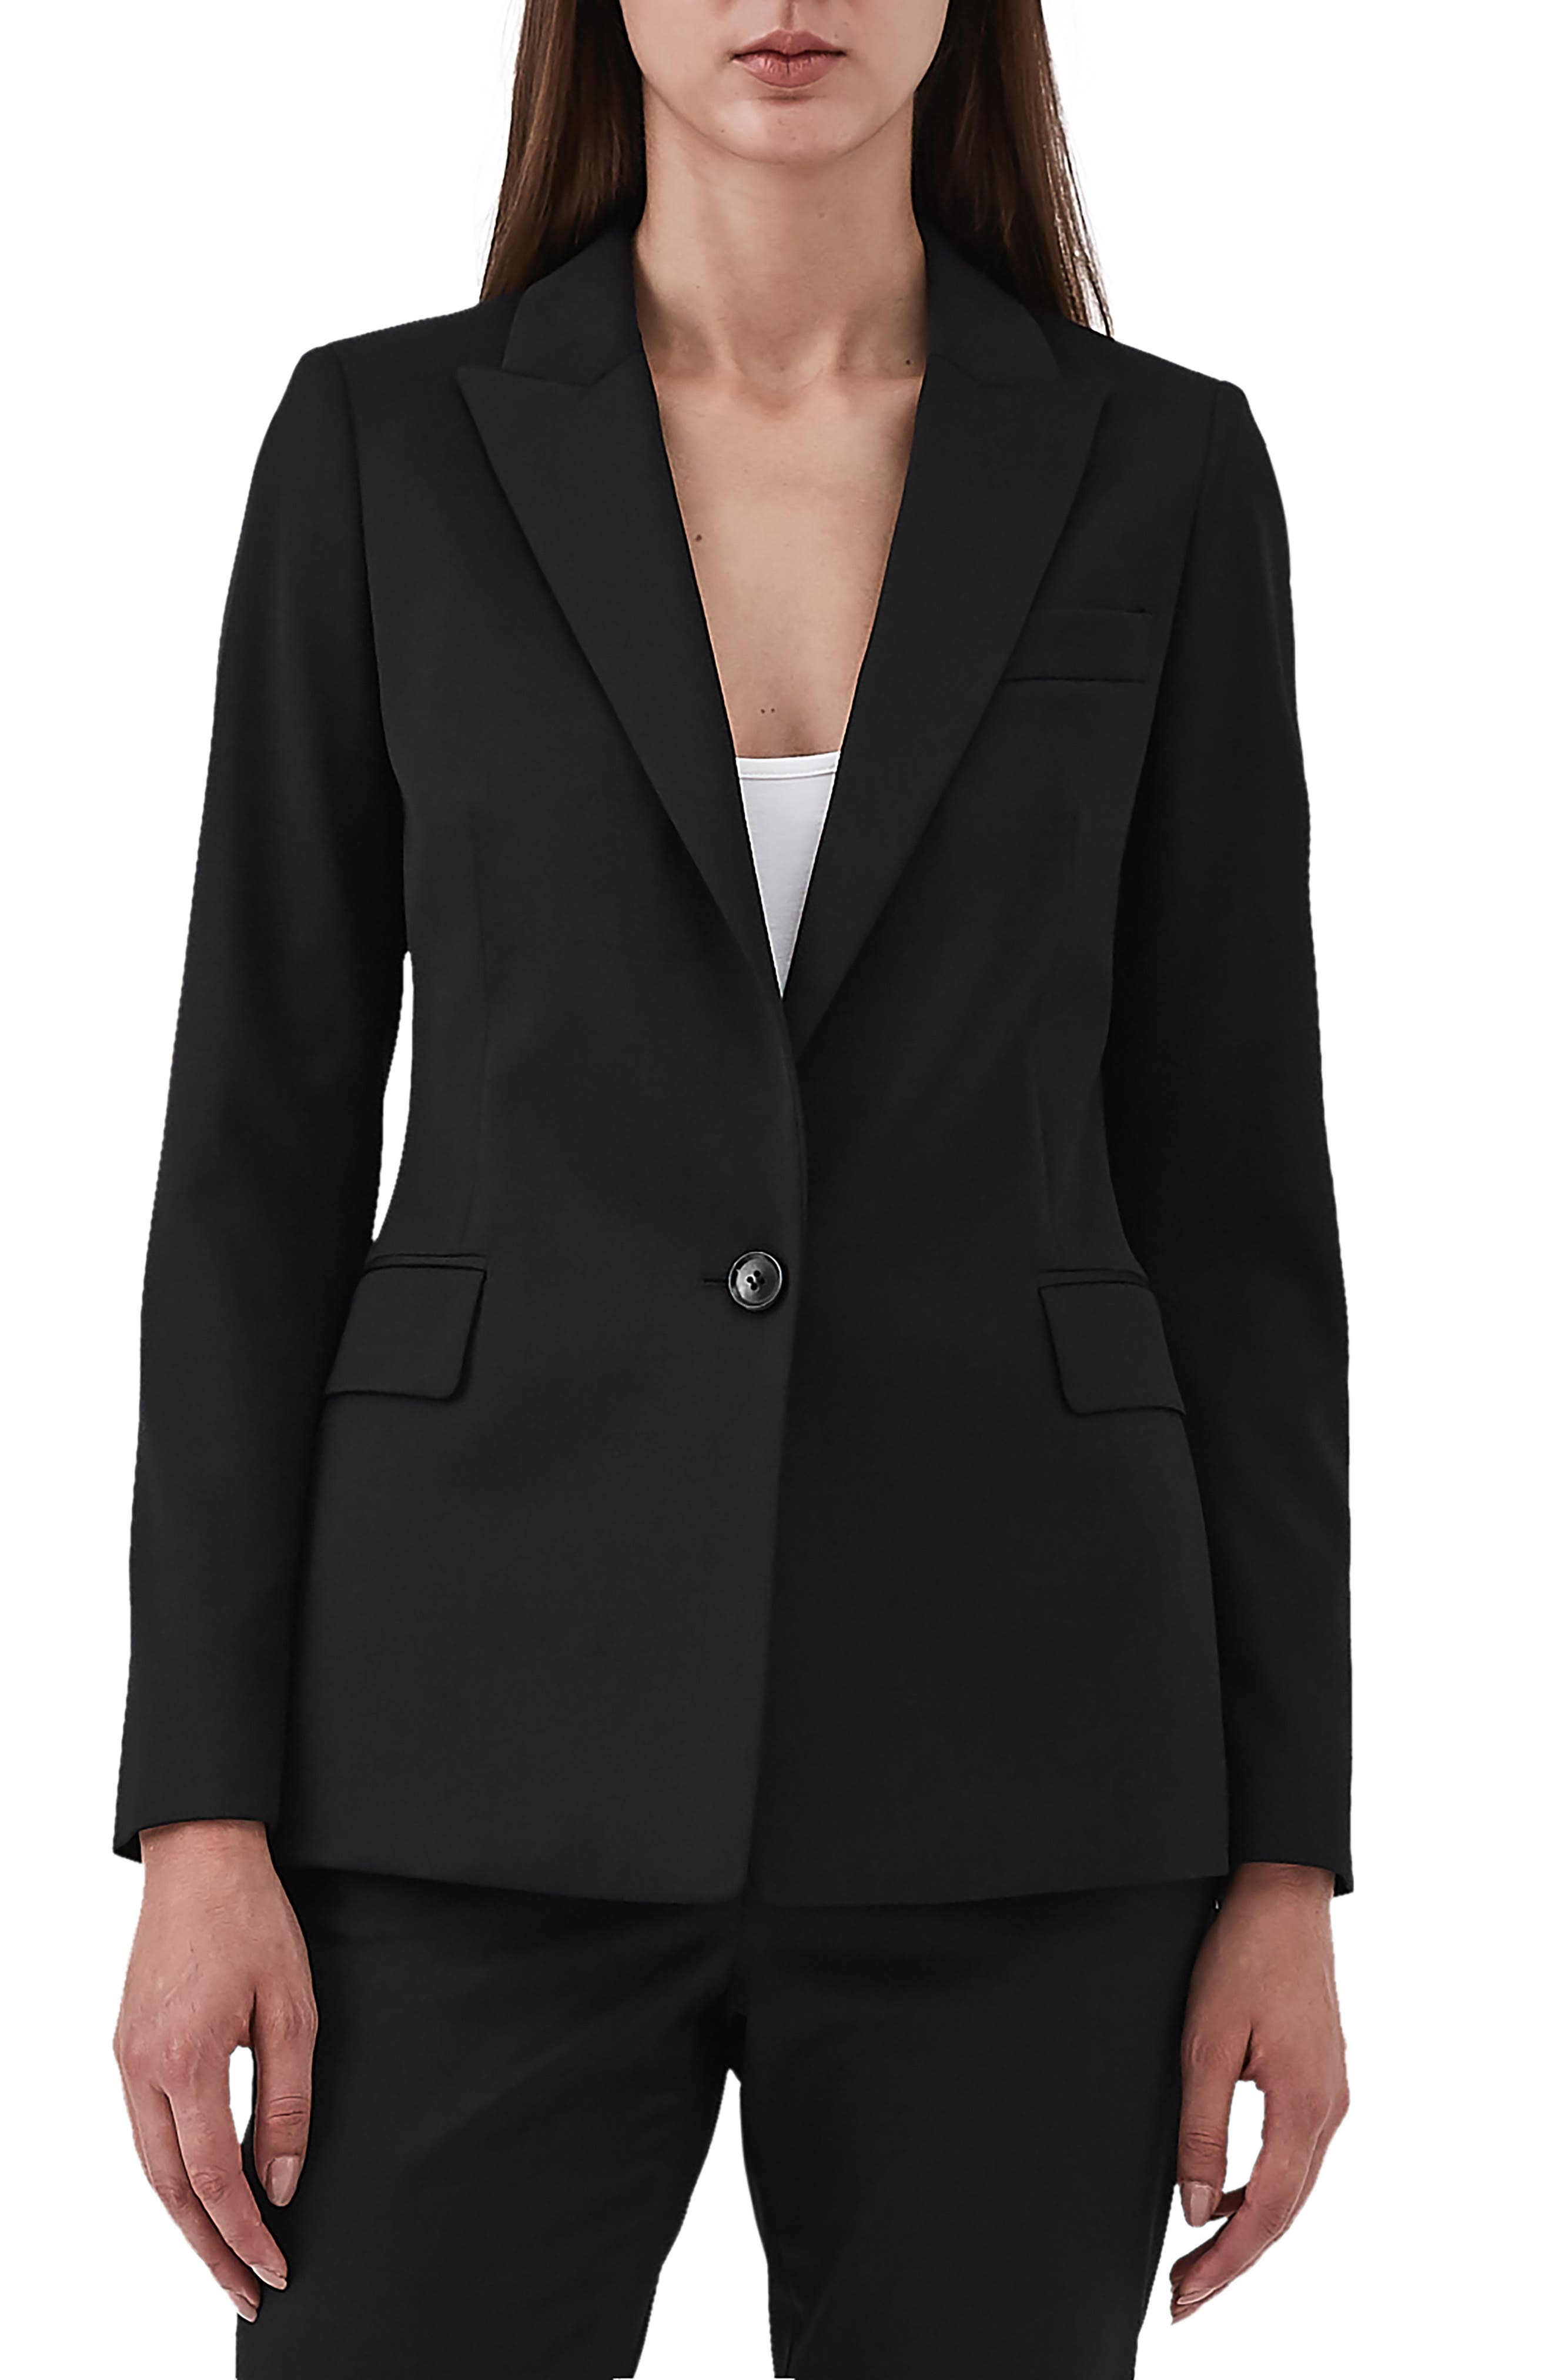 REISS Harper Slim Fit Jacket in Black